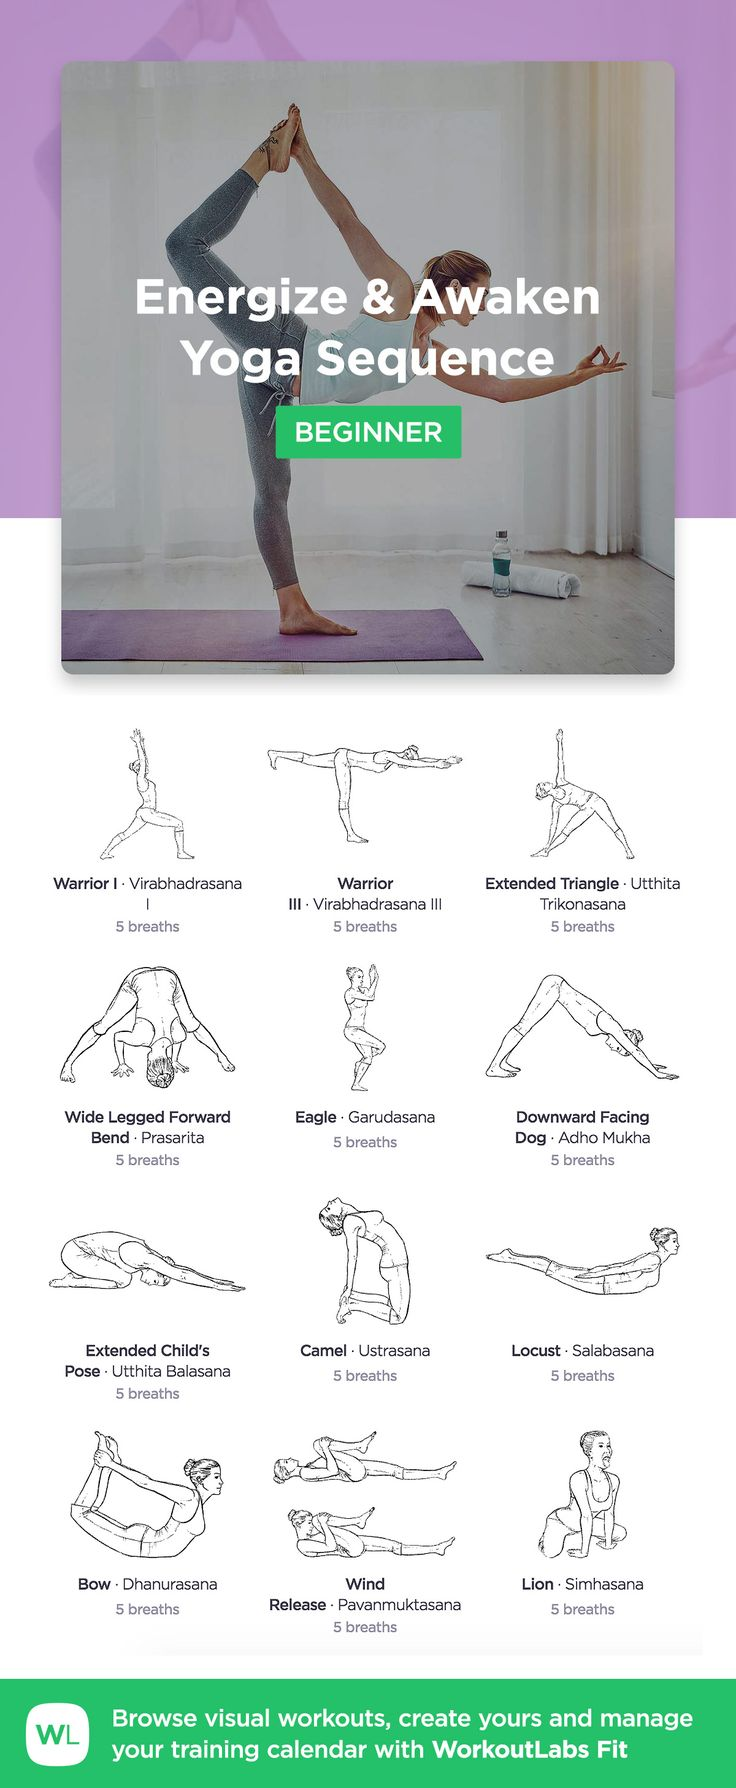 Energize and Awaken Yoga Sequence for beginners by WorkoutLabs Fit · View and download printable PDF: https://workoutlabs.com/s/L44fk